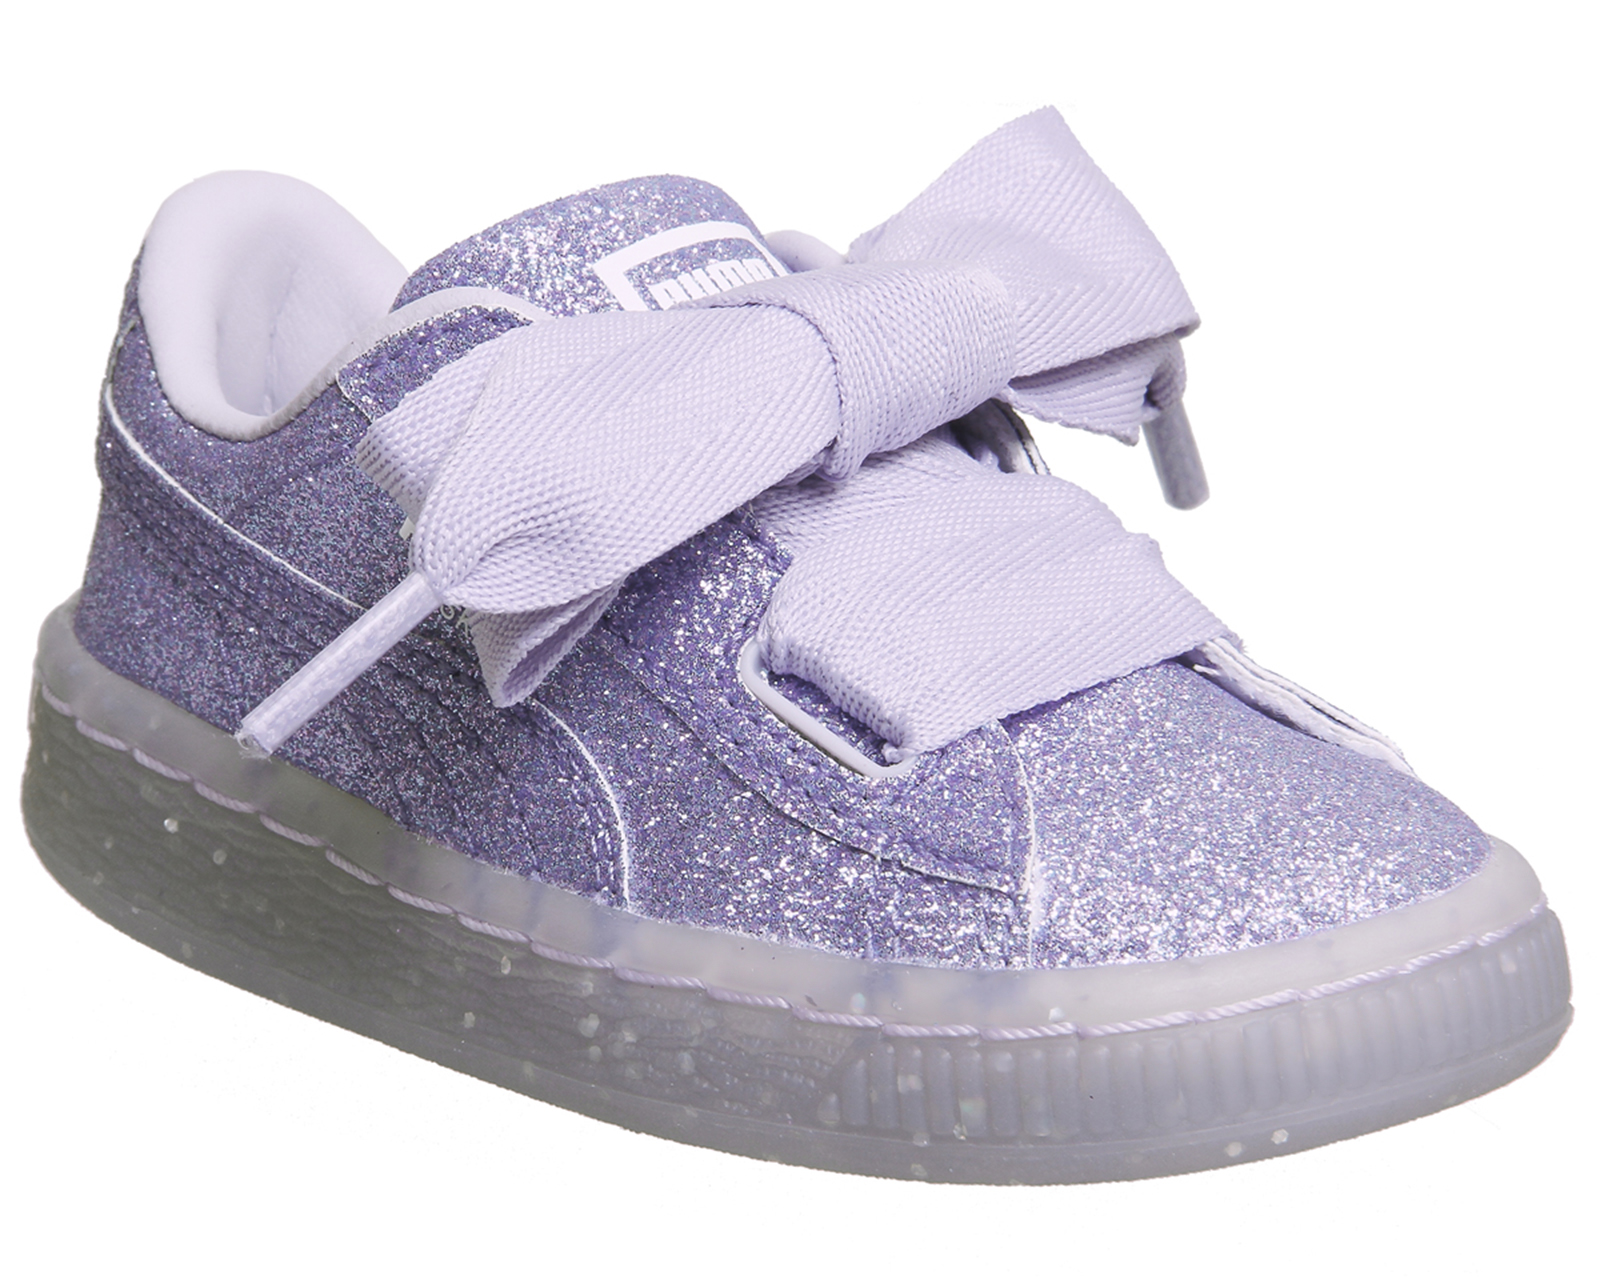 eab77bf91342 Sentinel Kids Puma Basket Heart Inf Thistle Glitter Exclusive Kids